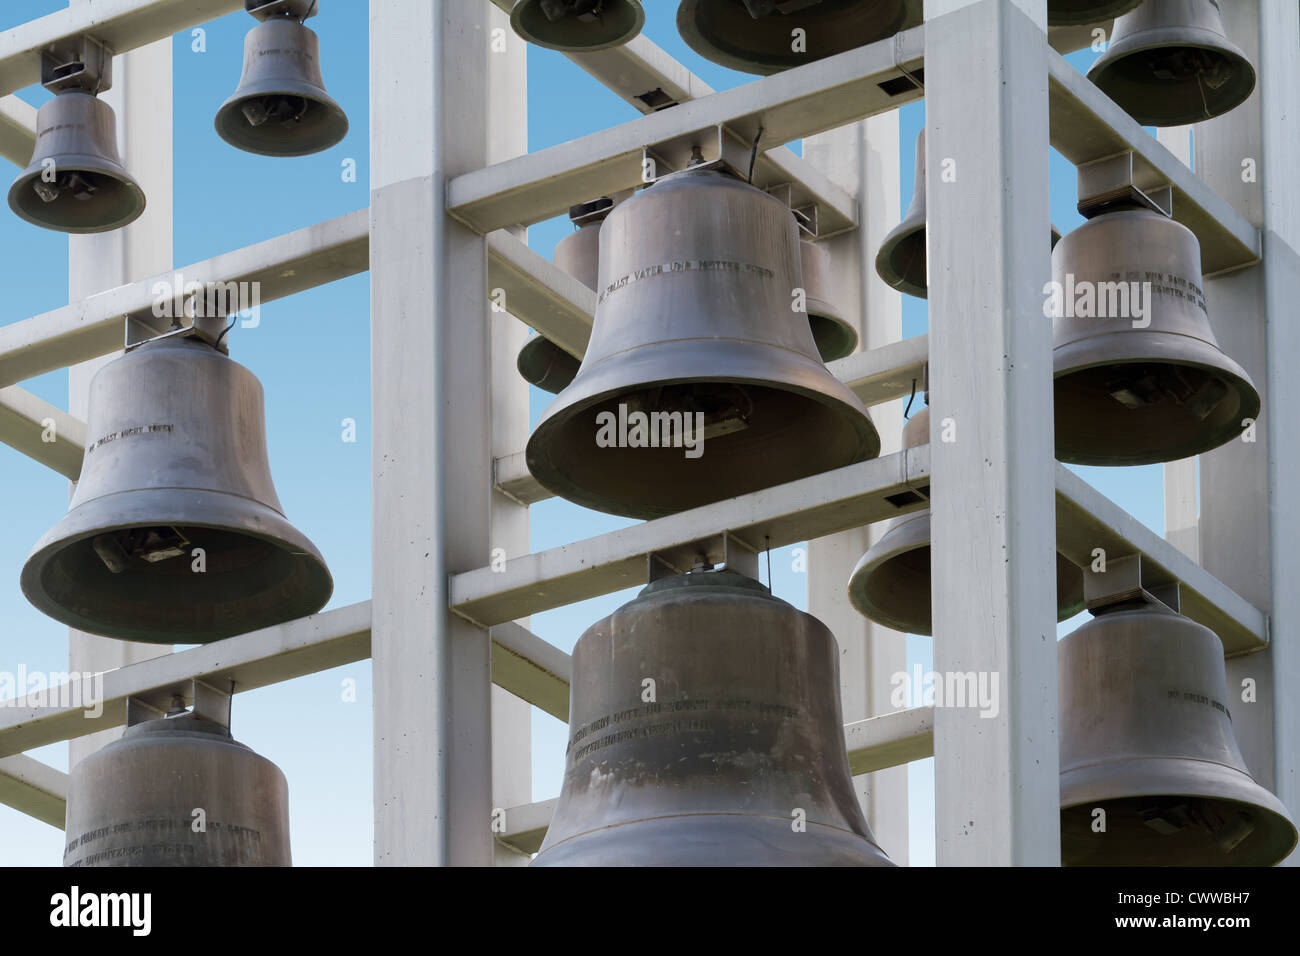 Bells of  a tower - Stock Image